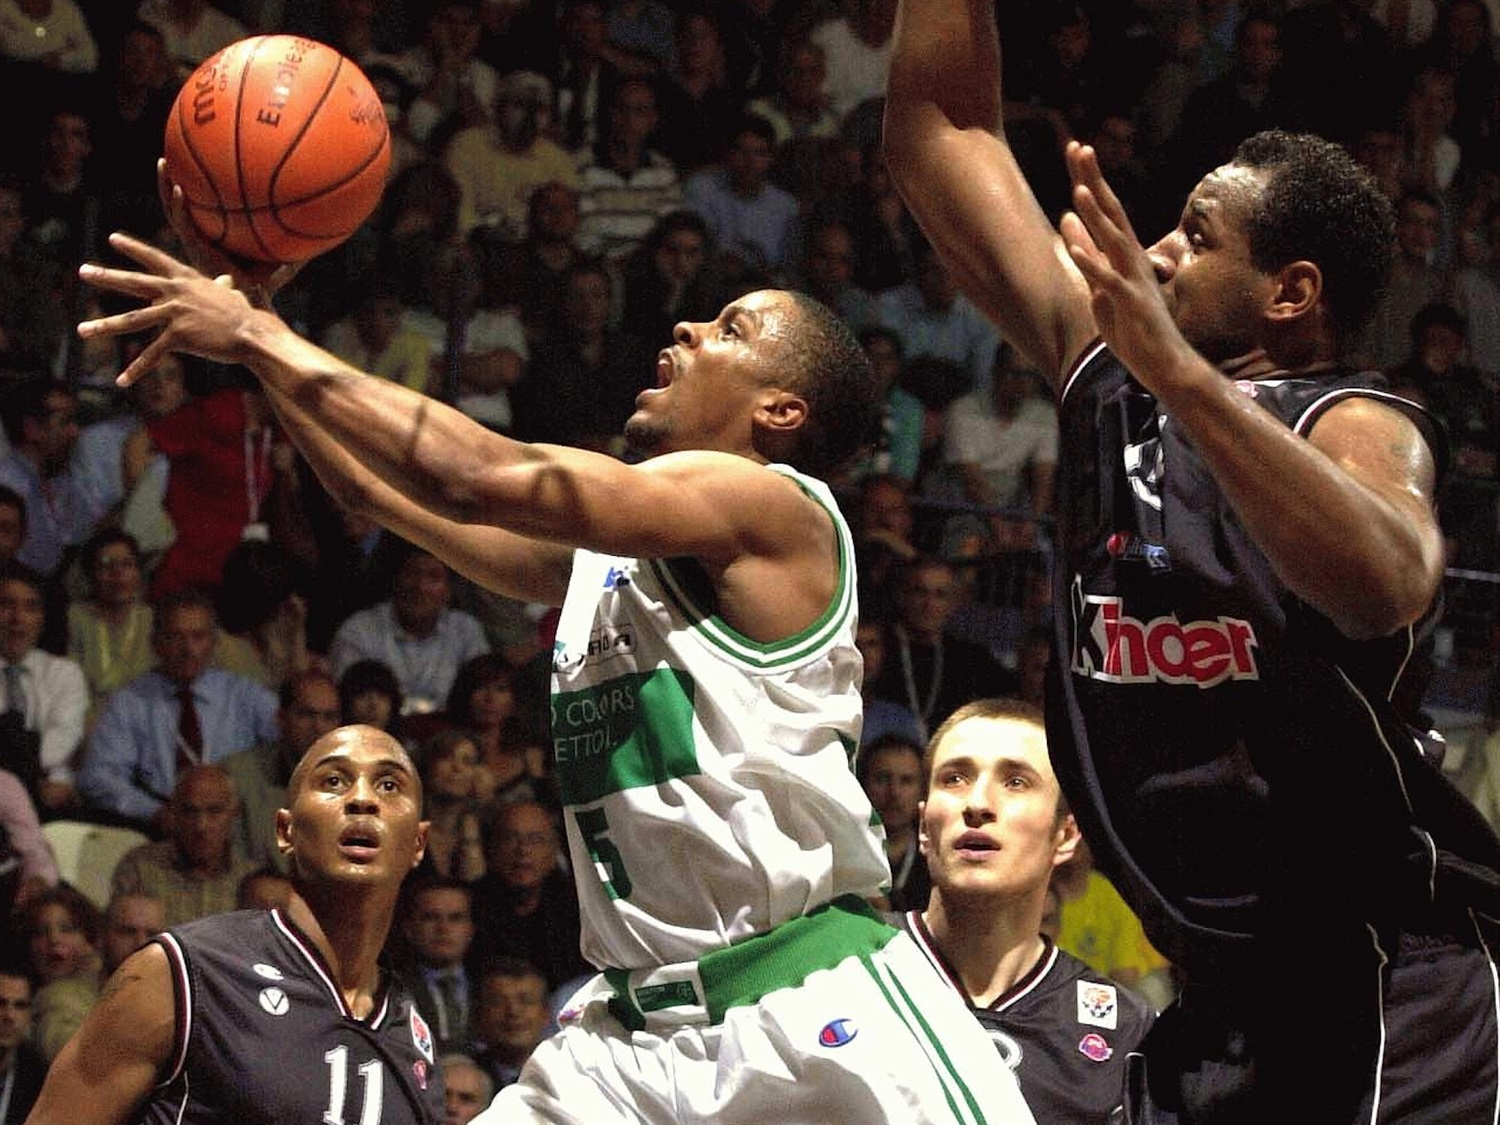 Tyus Edney - Benetton Basket - Final Four Bologna 2002 - EB01